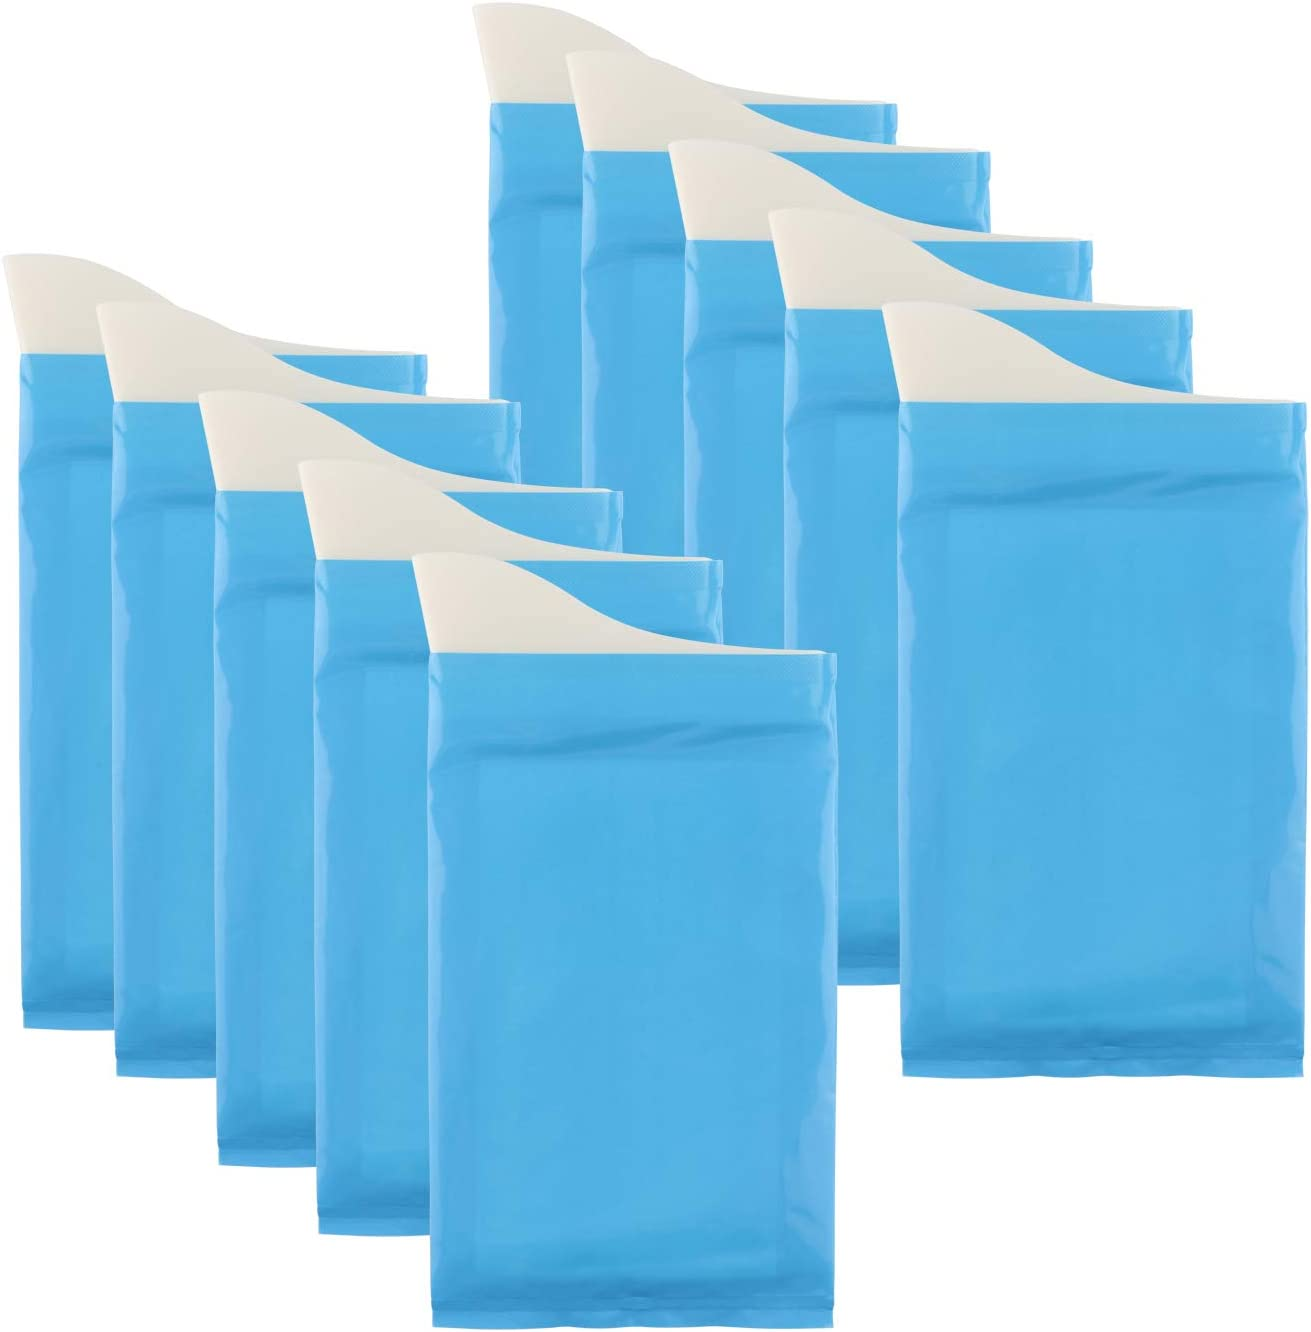 Details about  /Portable 5.3/'/'x12.4/'/' Pee Bags Large Capacity Emergency Pee Bags for Women Men